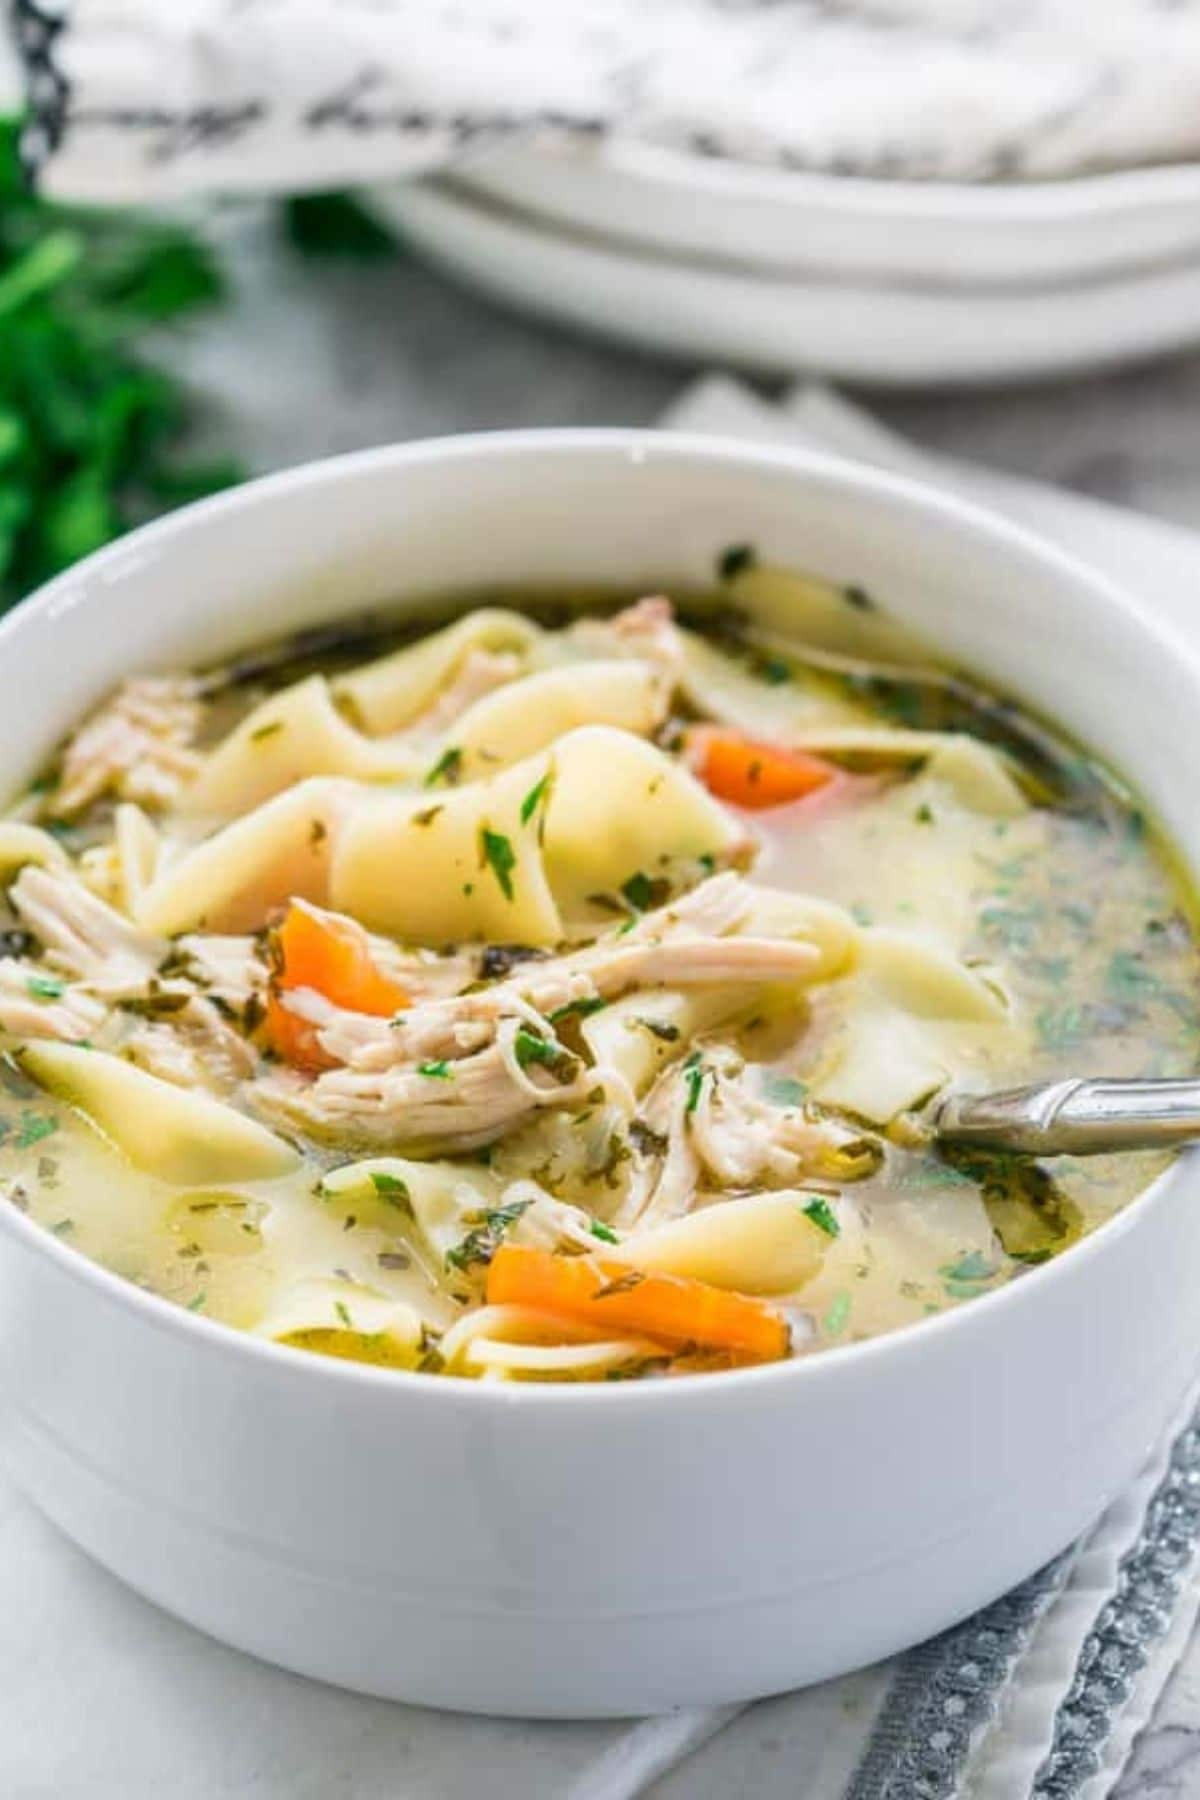 Chicken noodle soup in white bowl